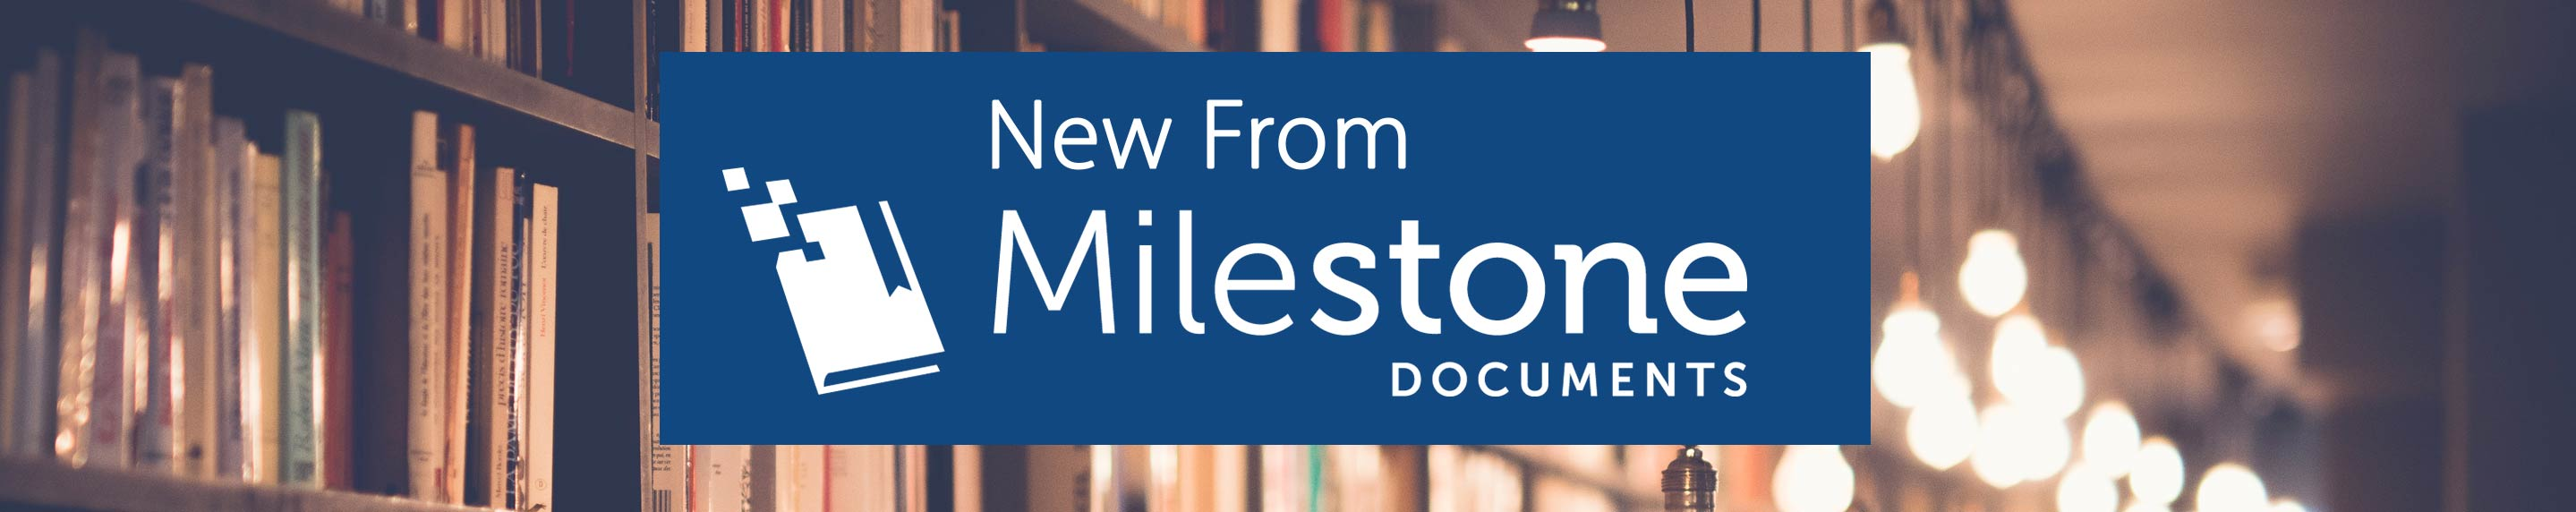 Milestone Documents